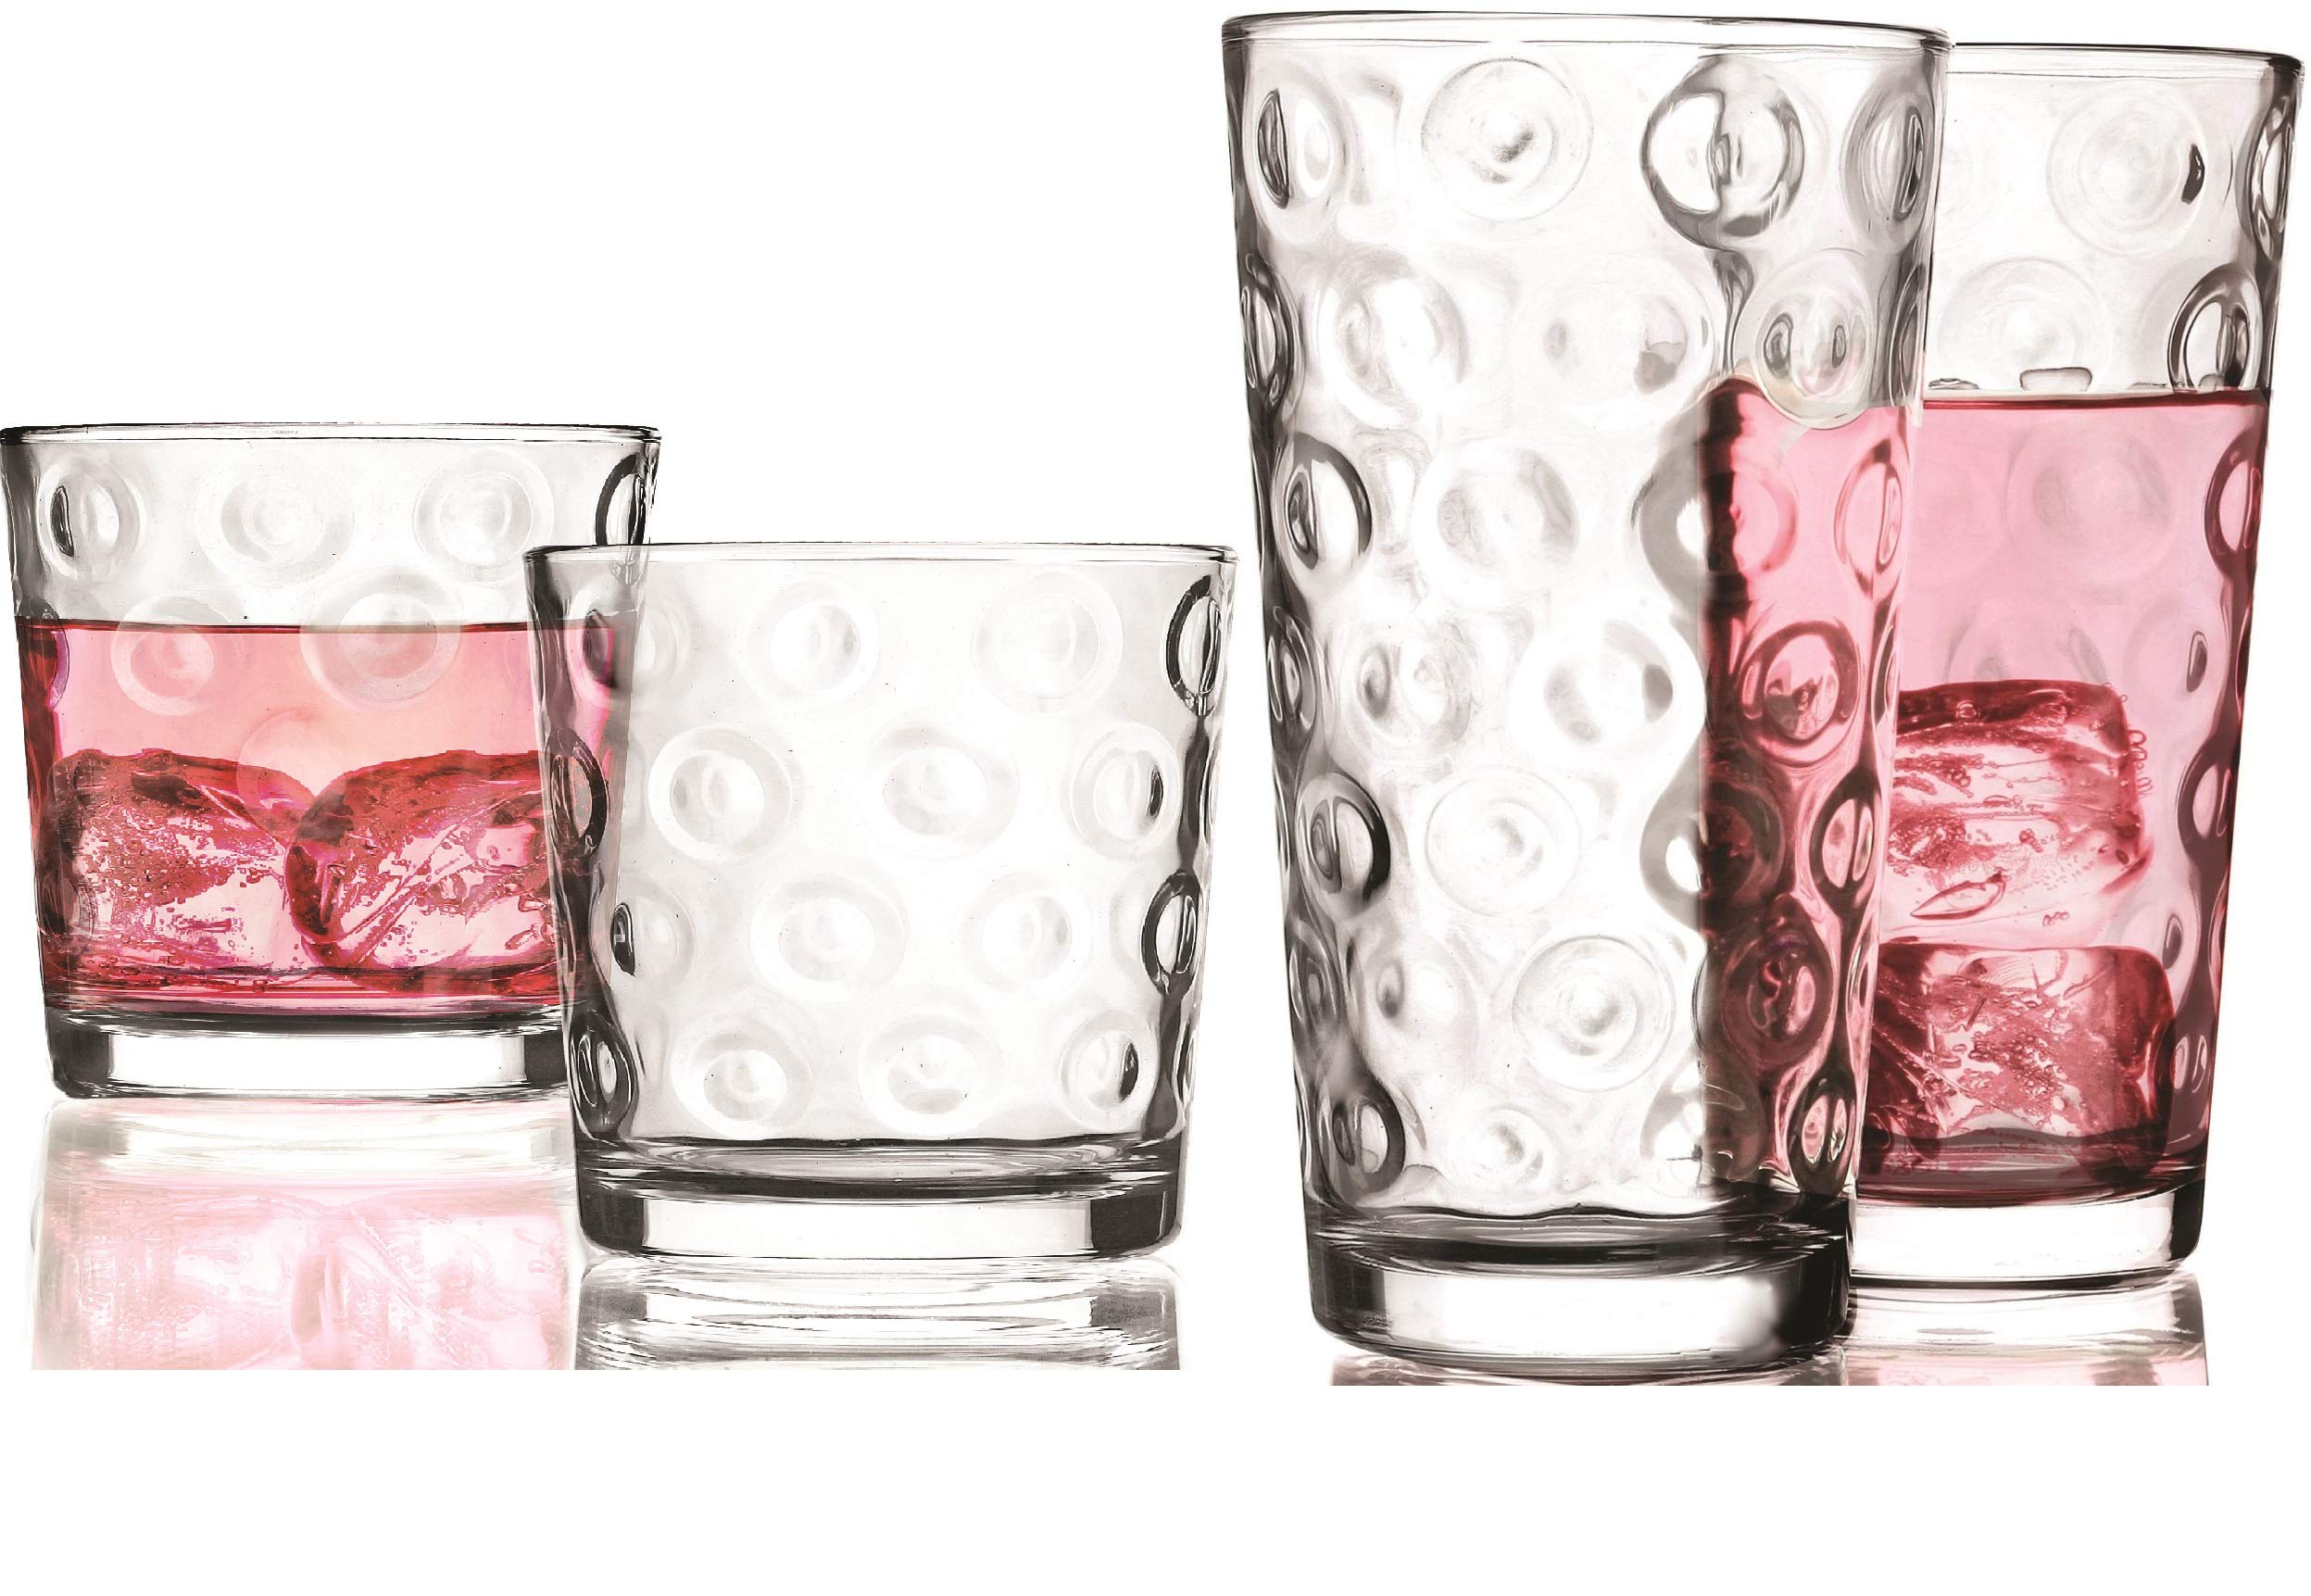 Circleware 40189 Circle Huge Set of 16 Highball Tumbler Drinking Glasses and Whiskey Cups, Glassware for Water, Beer, Juice, Ice Tea, Beverage Decor, 8-15.7 oz & 8-12.5 oz